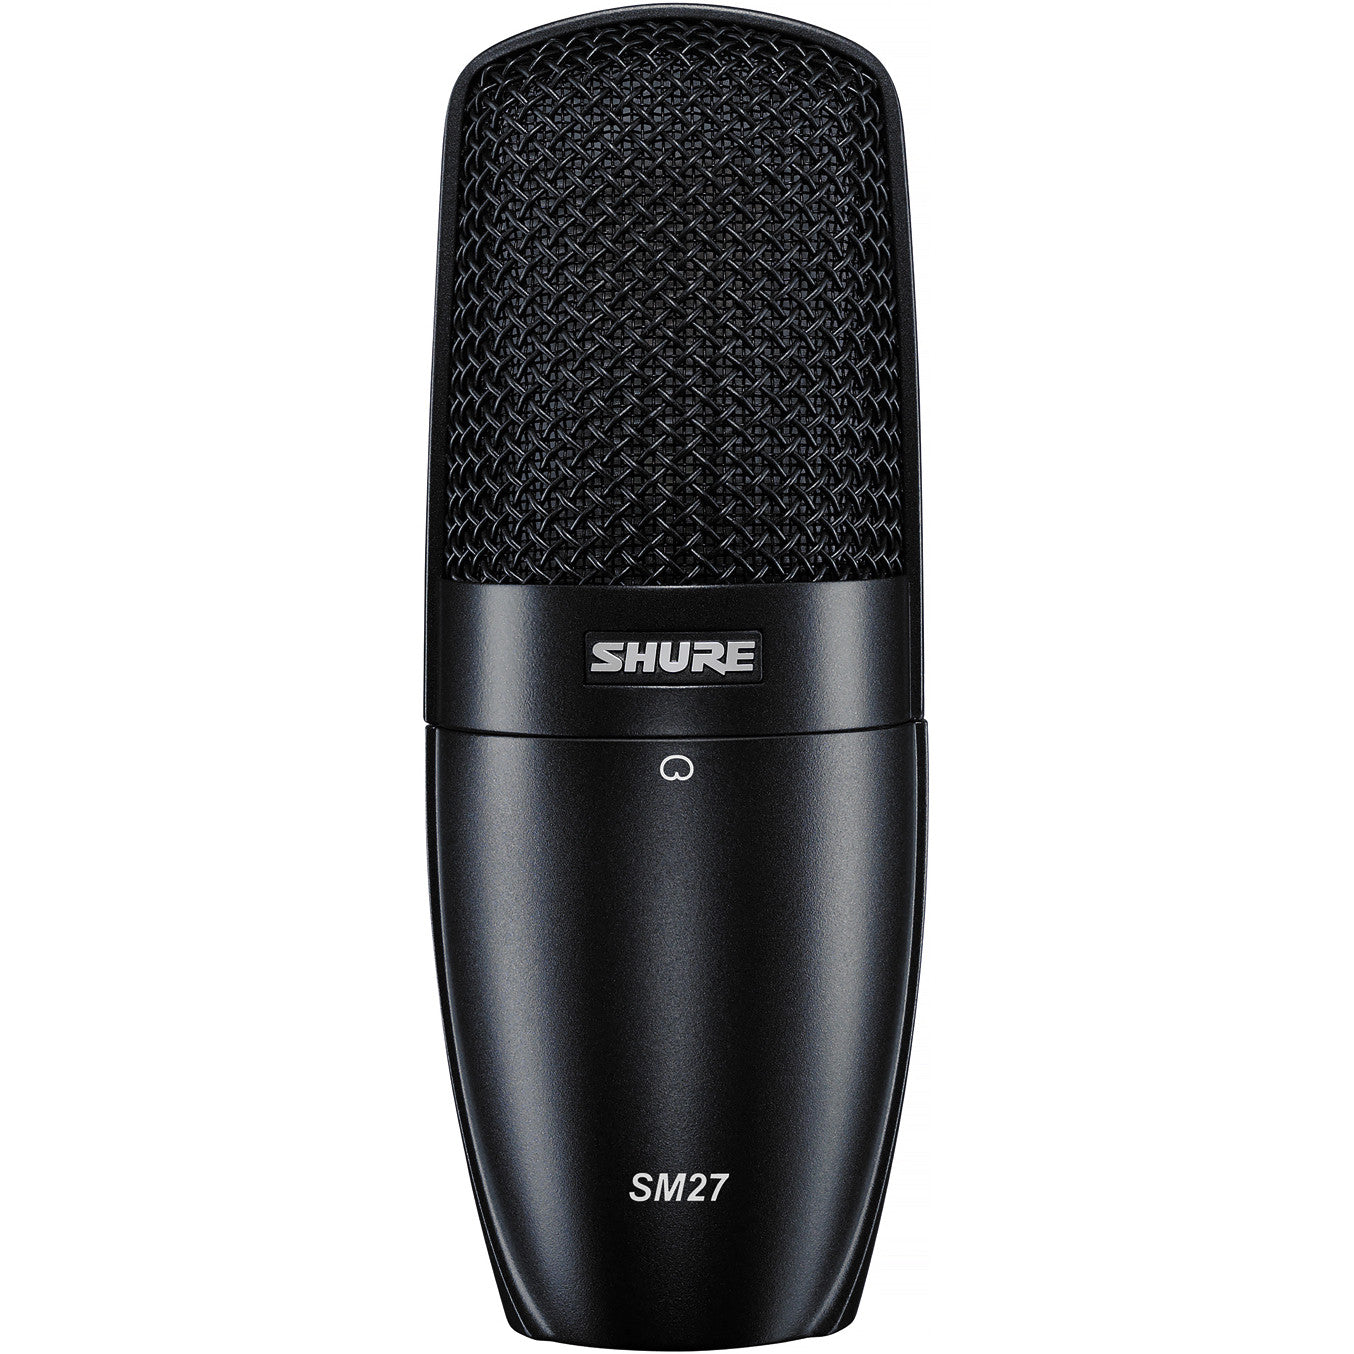 Shure SM27 Multi-Purpose Condenser Microphone | Music Experience | Shop Online | South Africa